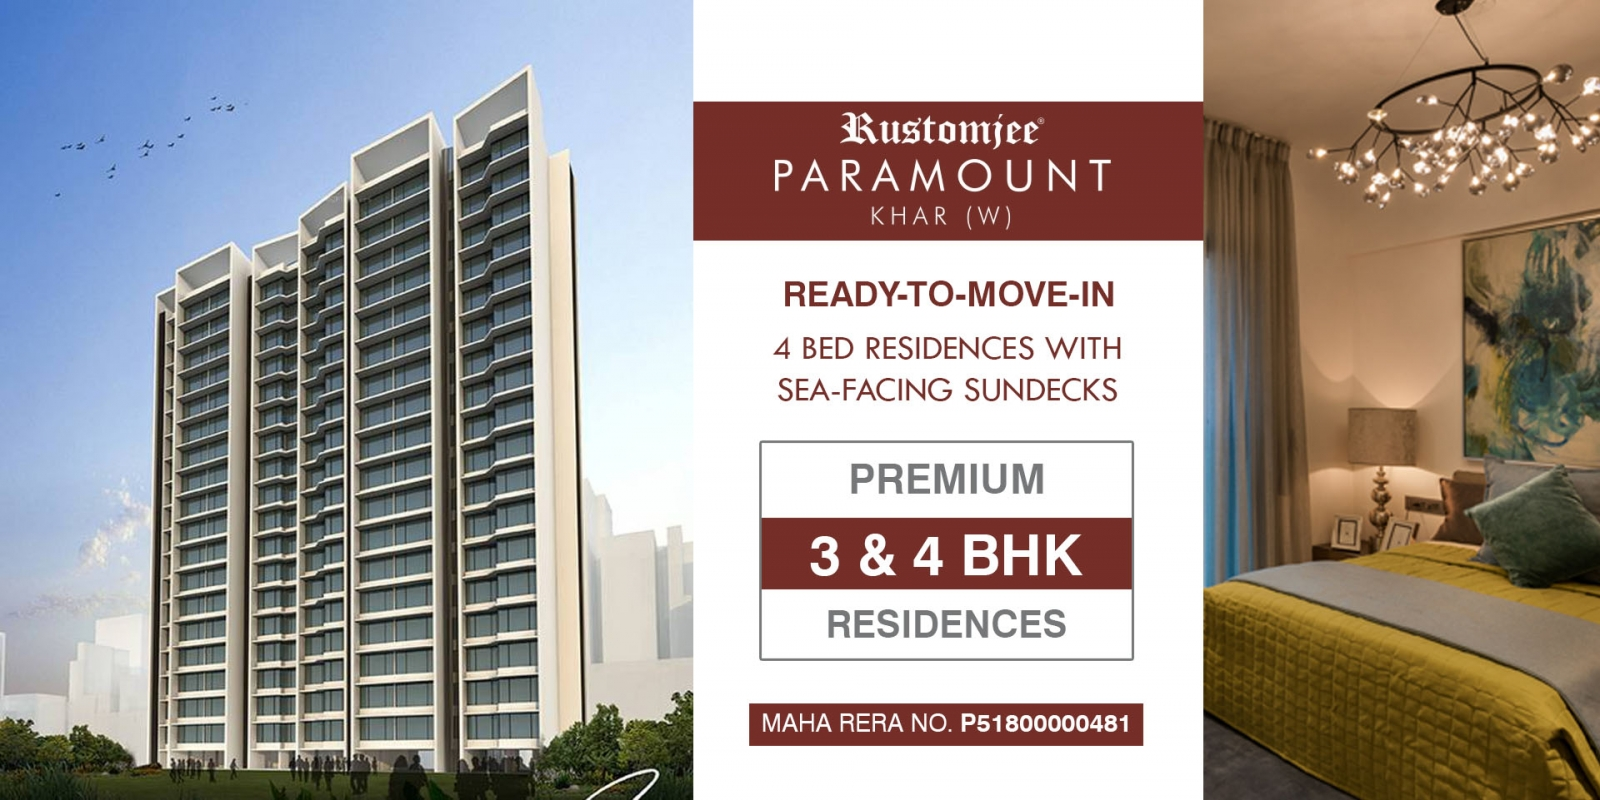 Rustomjee Paramount Khar West